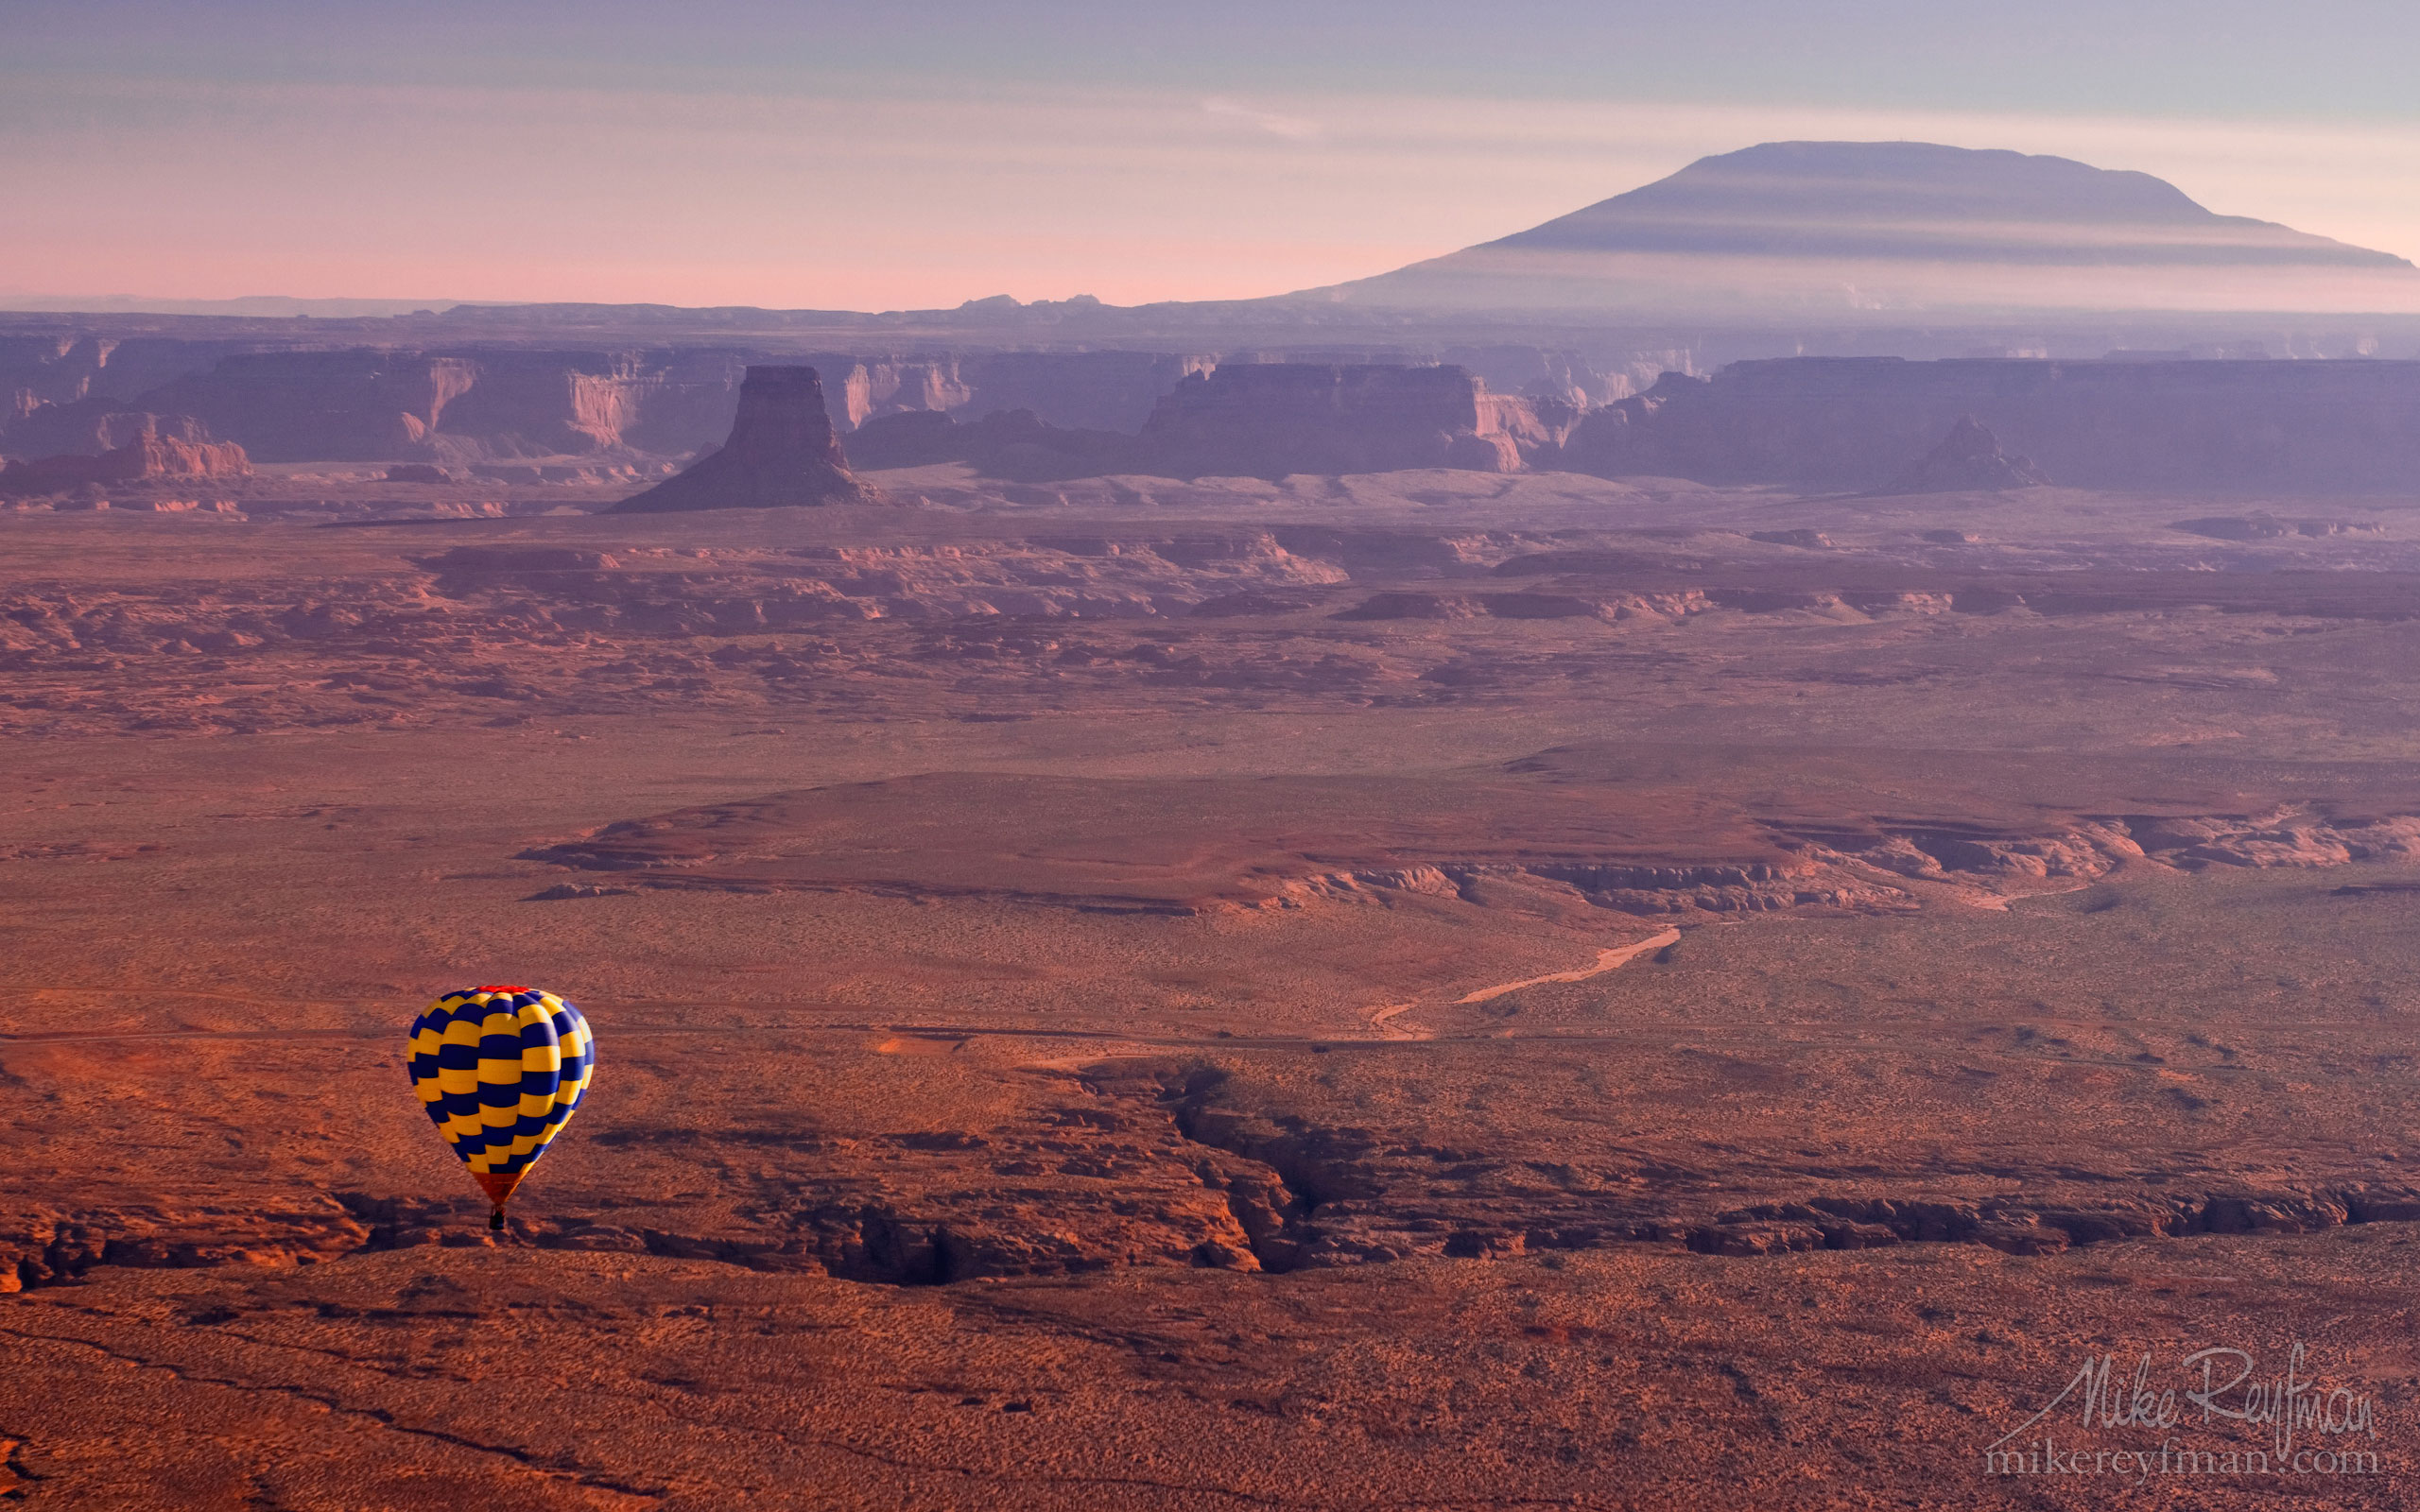 Balloon over desert with Navajo Mountain in the background. Glen Canyon NRA. Uta/Arizona, USA. 060-LP3_DSC0429.jpg - Lake Powell, Glen Canyon NAR. Colorado and Sun Juan Rivers. Utah/Arizona, USA  - Mike Reyfman Photography